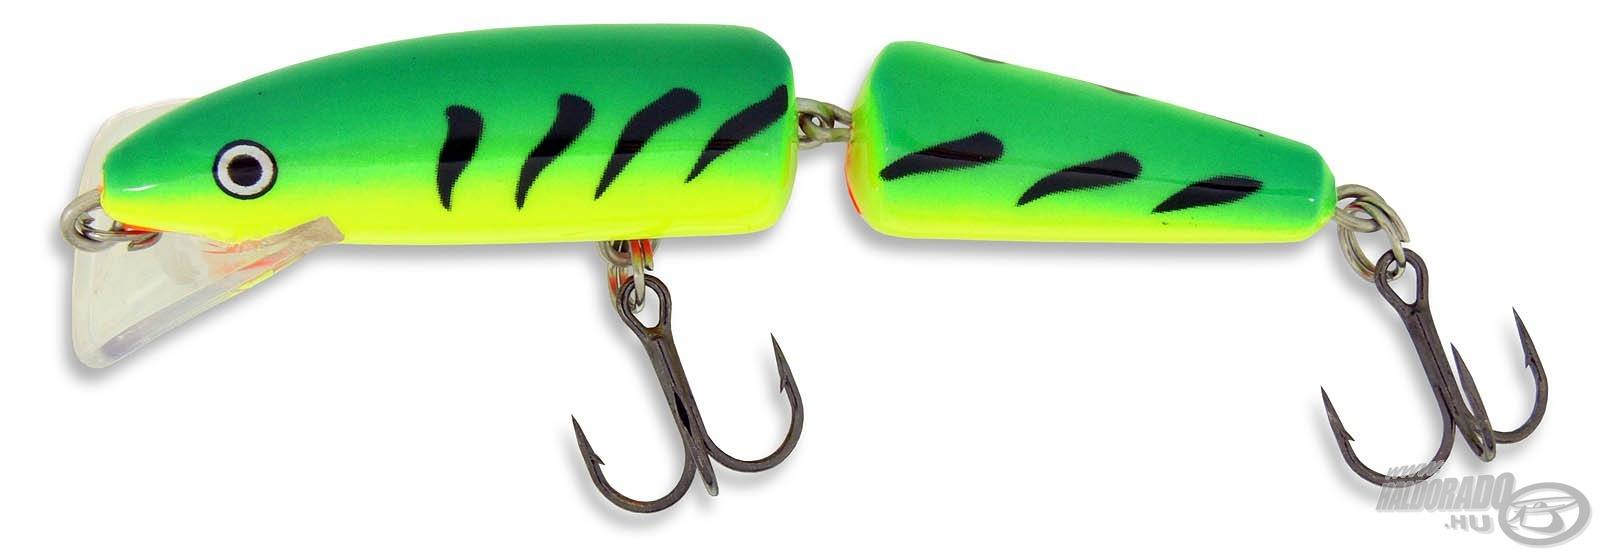 Rapala, Scatter, Rap, Jointed, SCRJ09, FT, 3990, helyett, 2990Ft